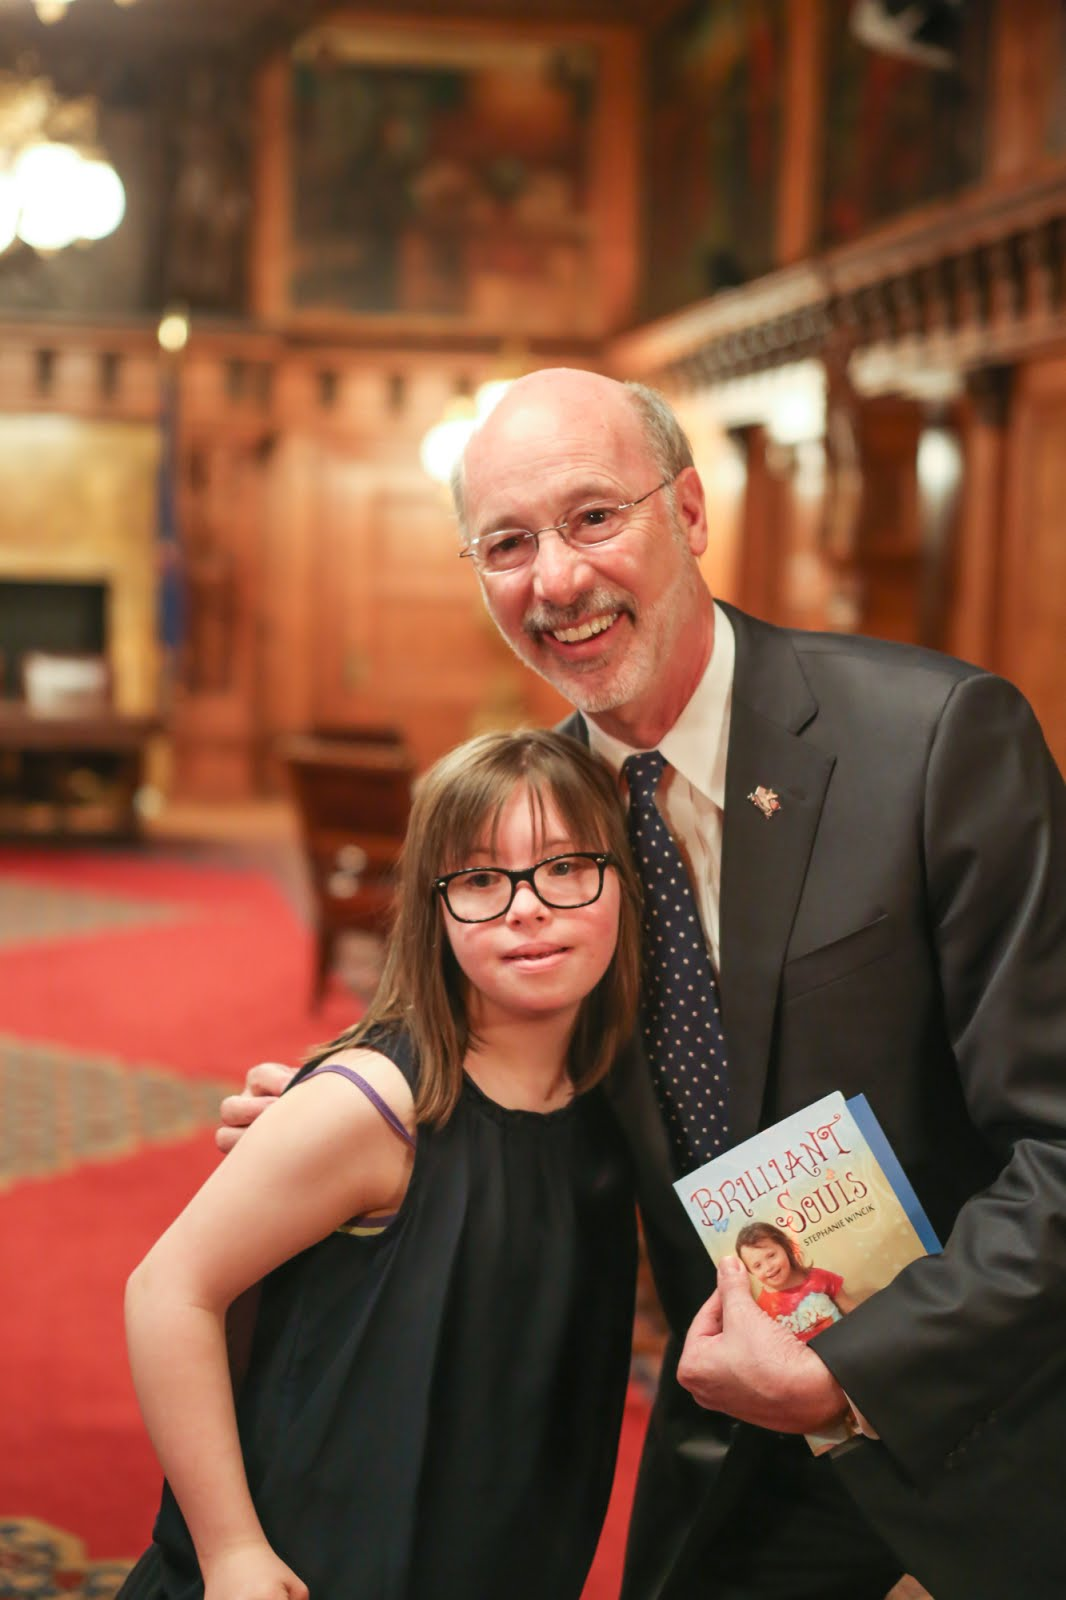 Chloe meets with PA Governor Wolf and gives him the SICC Report